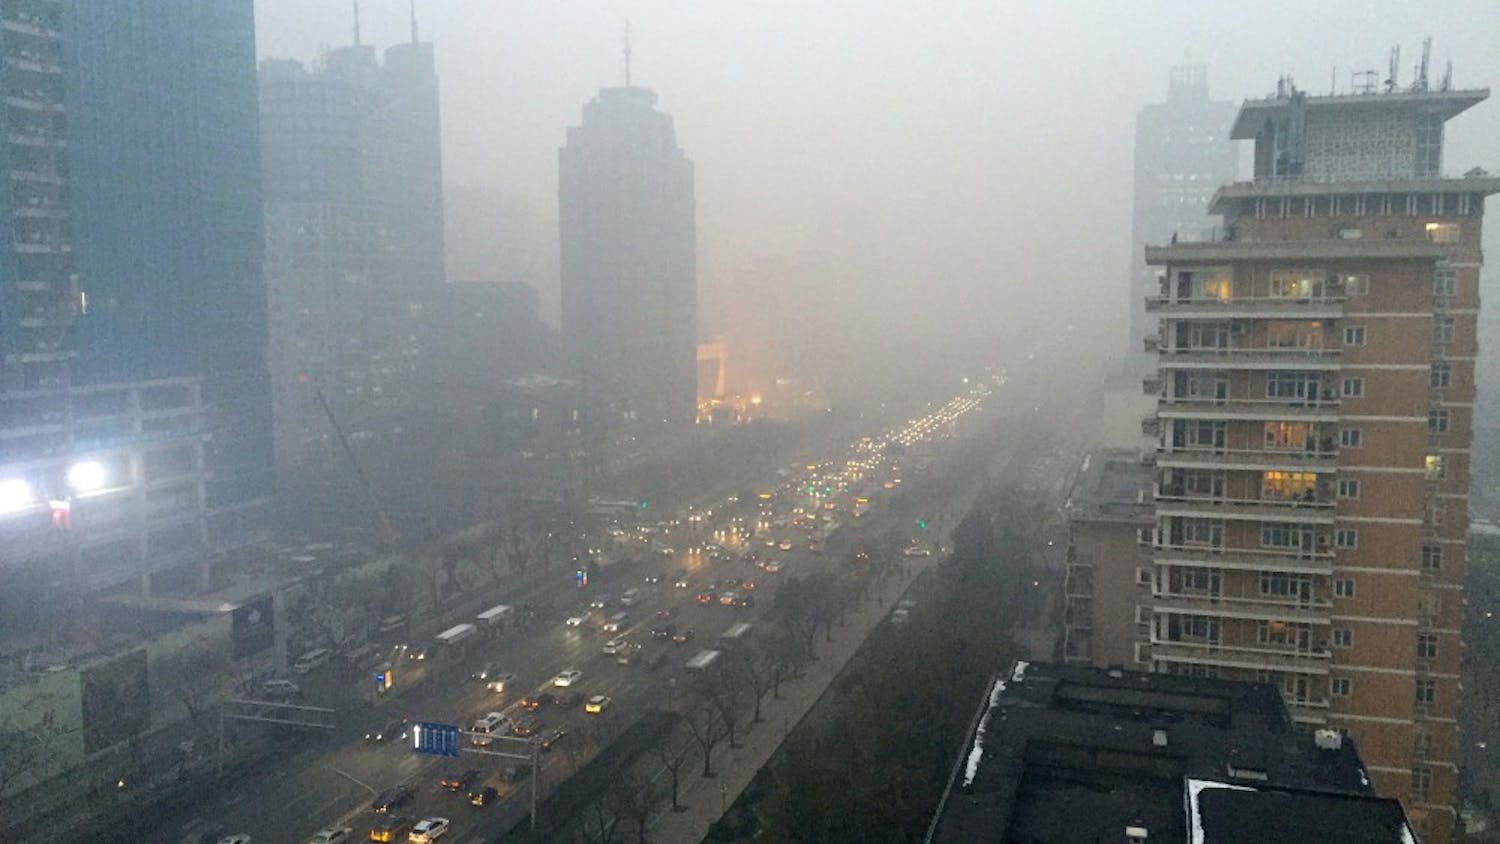 Smog hangs over Beijing's main boulevard, Chang'an Avenue, looking west toward the Forbidden City, on Monday, Nov. 30, 2015. Although the city is cracking down on dirty vehicles and some power plants, the smog of the last week has demonstrated Beijing's pollution-control efforts have yet to produce lasting results. It comes as Chinese President Xi Jinping is in Paris pledging that China will reduce emissions linked to global climate change.  (Stuart Leavenworth/McClatchy/TNS)